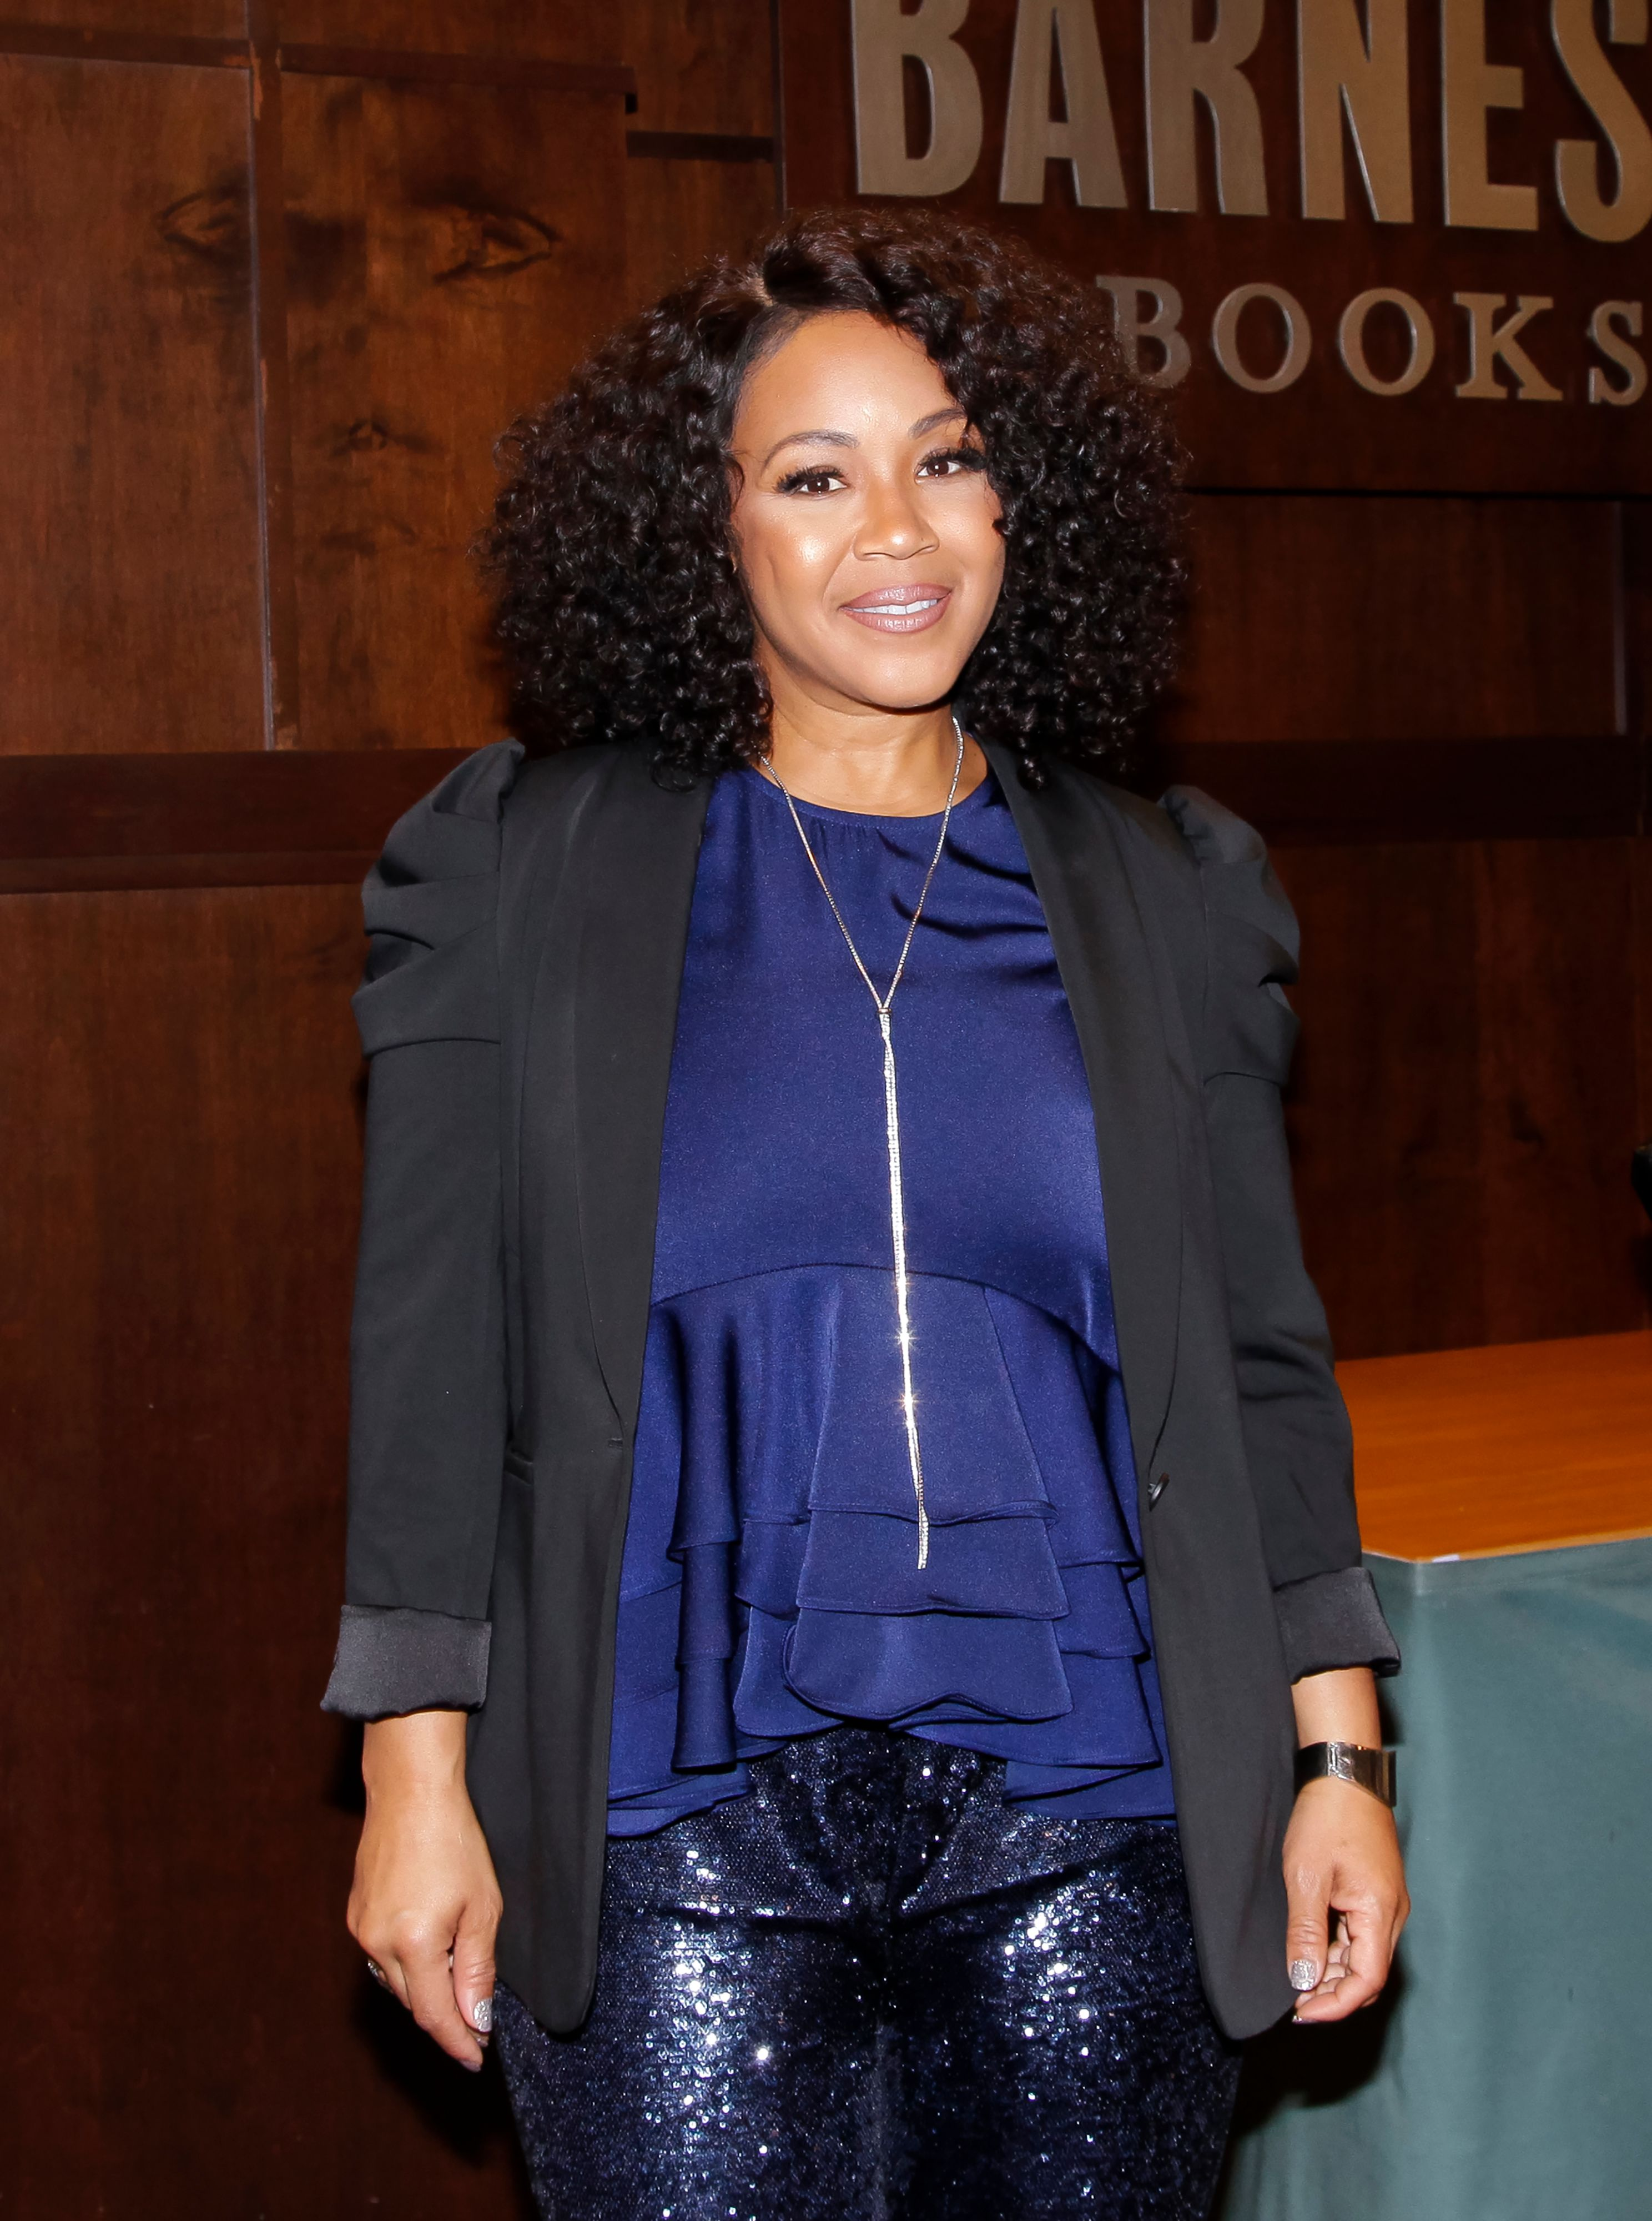 """Erica Campbell promotes her new book, """"More Than Pretty' at Barnes & Noble"""" at The Grove on September 28, 2019 in Los Angeles, California. 